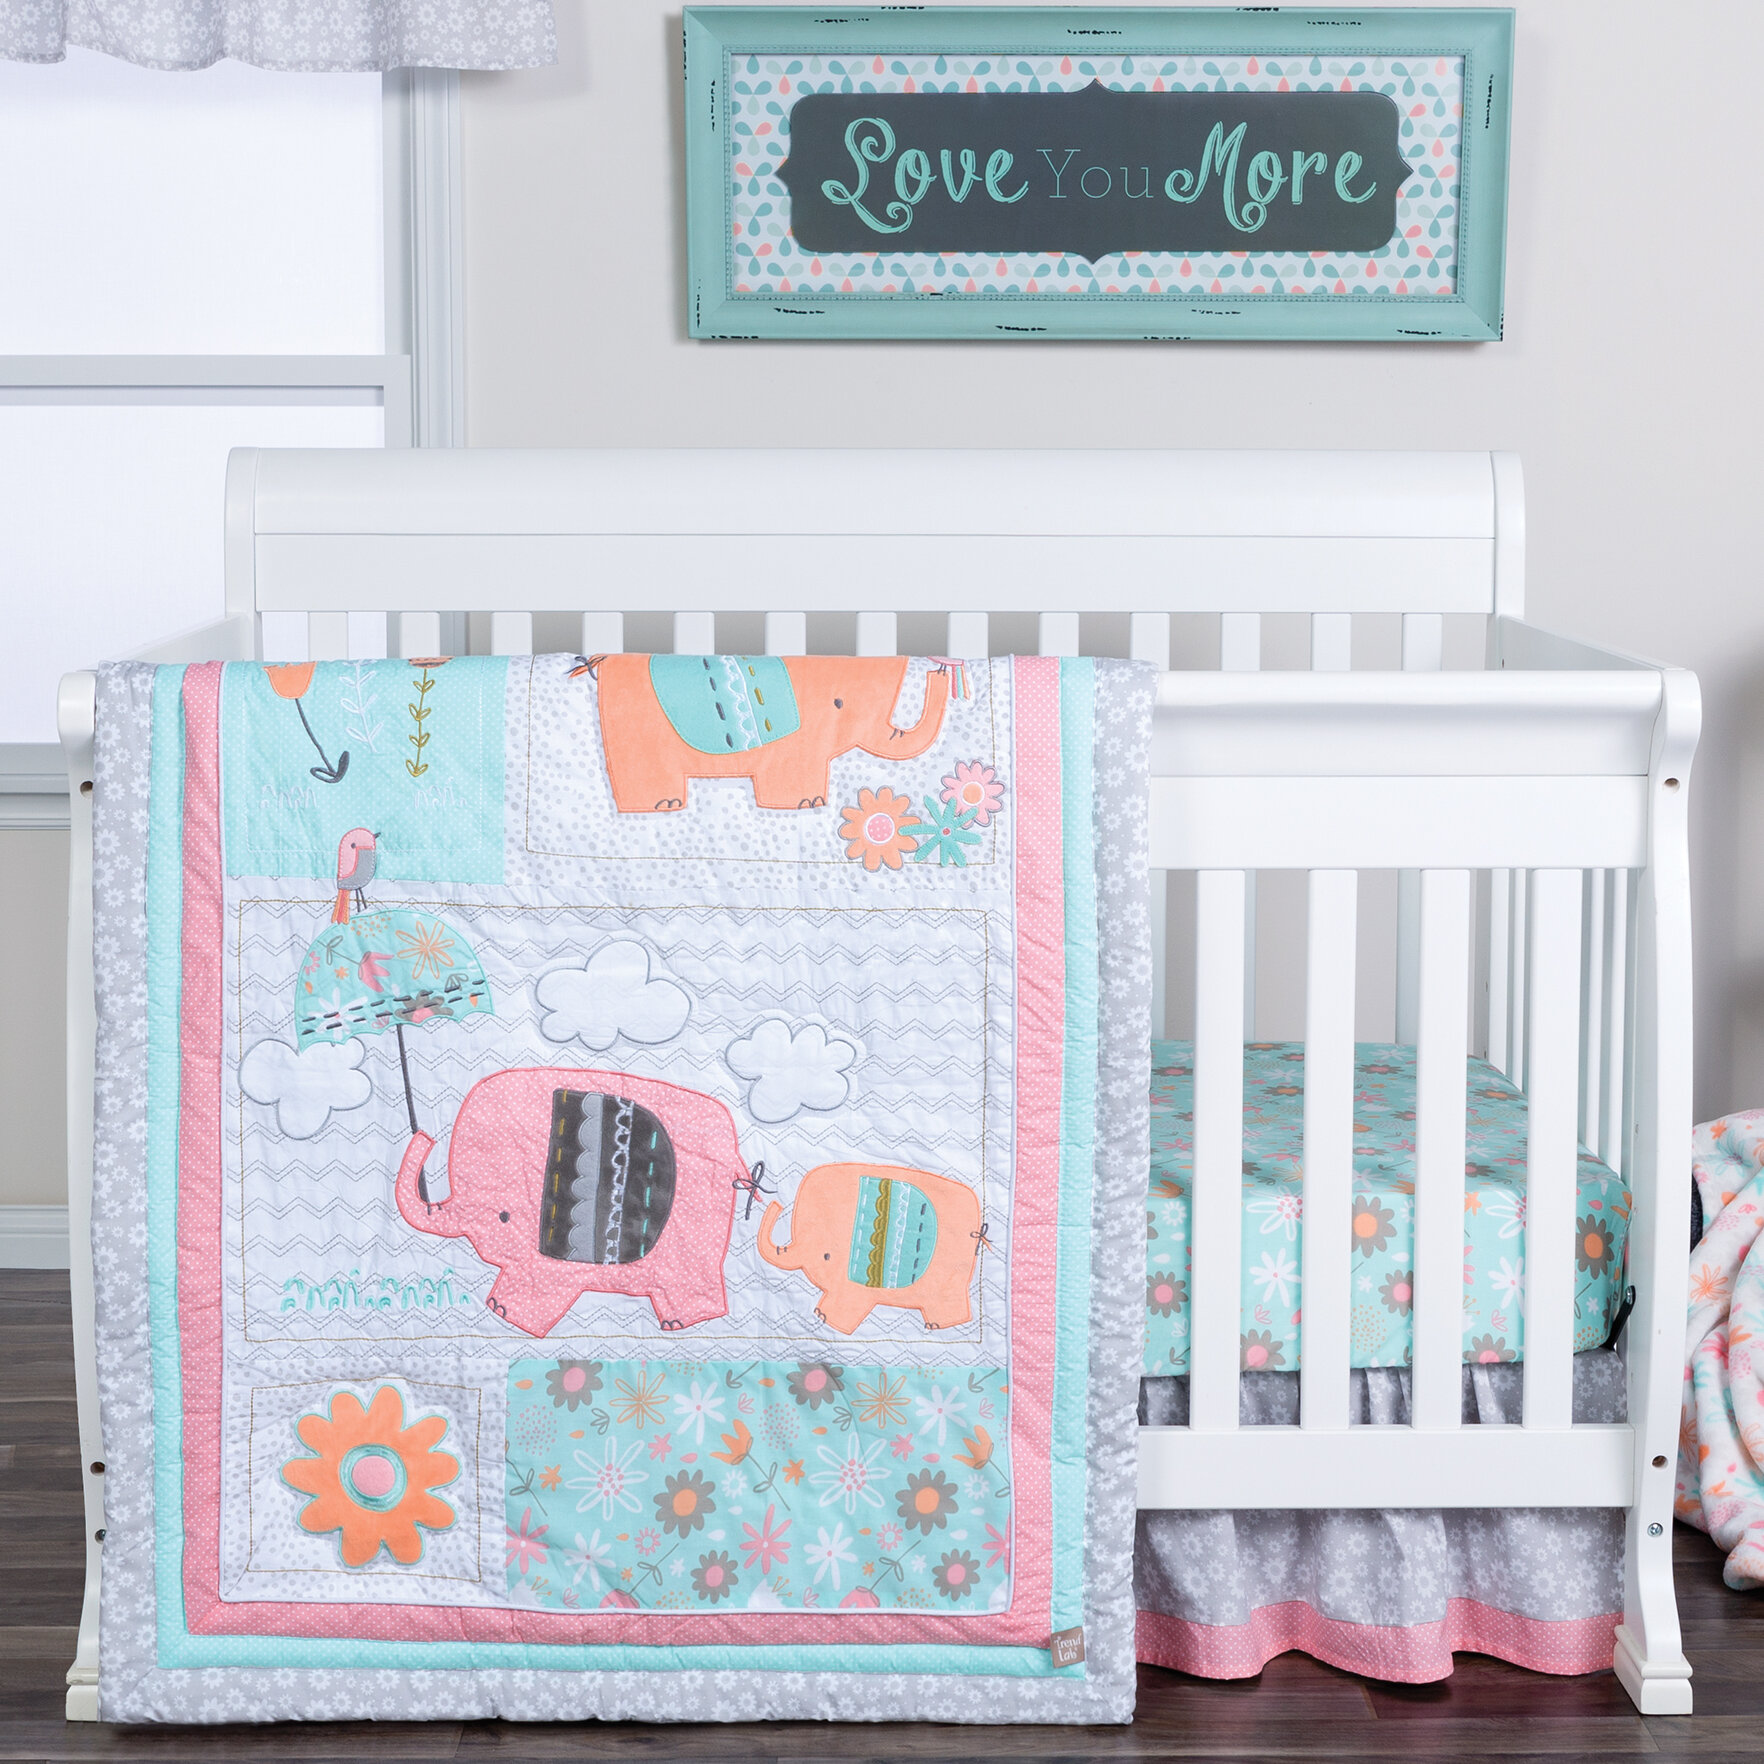 designs chevron navy teal yellow ter boy light set bumper blue elephant orange grey coral red stupendous pink cribs sets and white bedding crib baby modern girl nursery linen cot skirt sheets